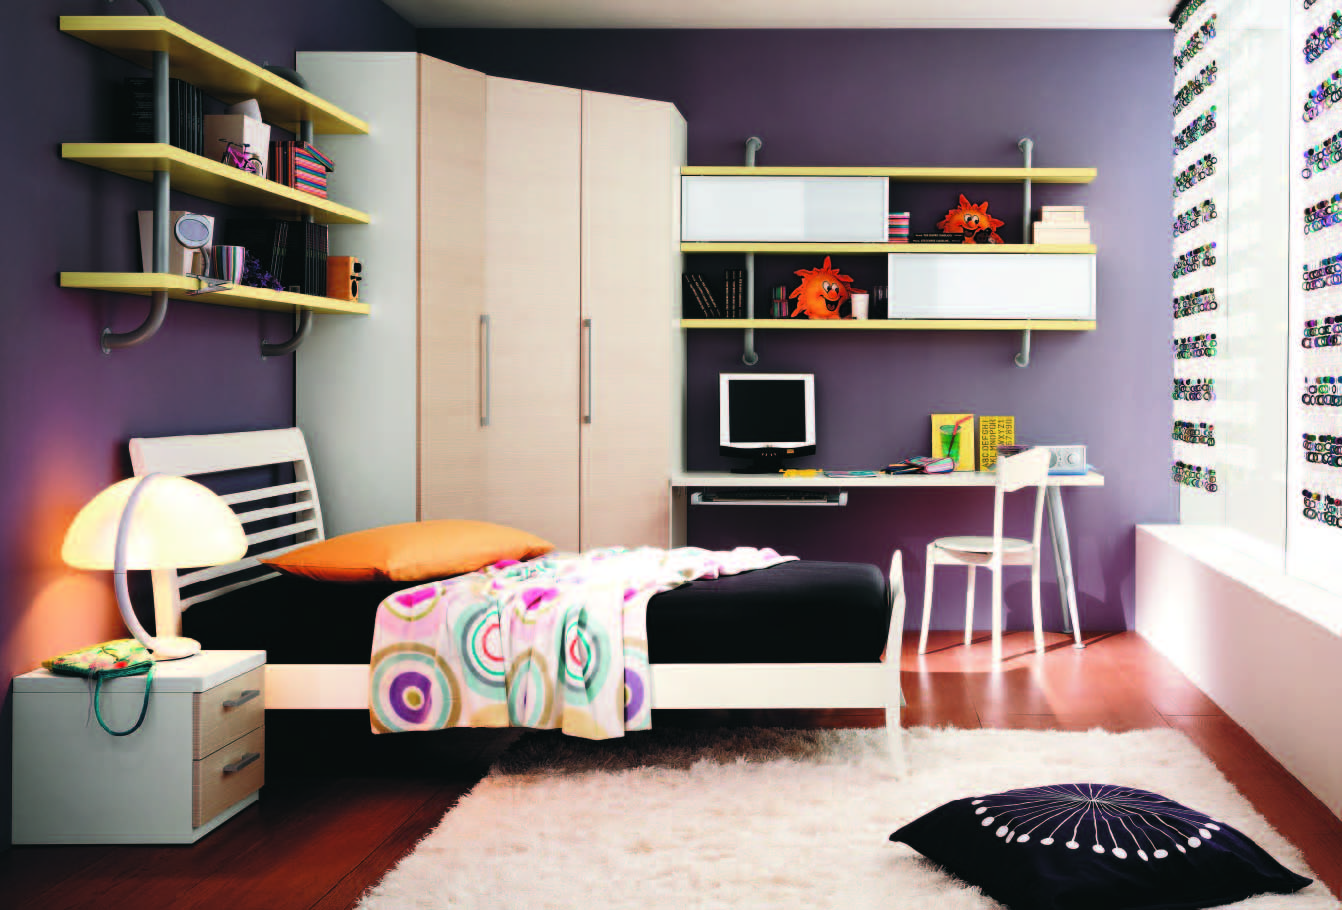 Fabulous modern themed rooms for boys and girls for Jugendzimmer modern design